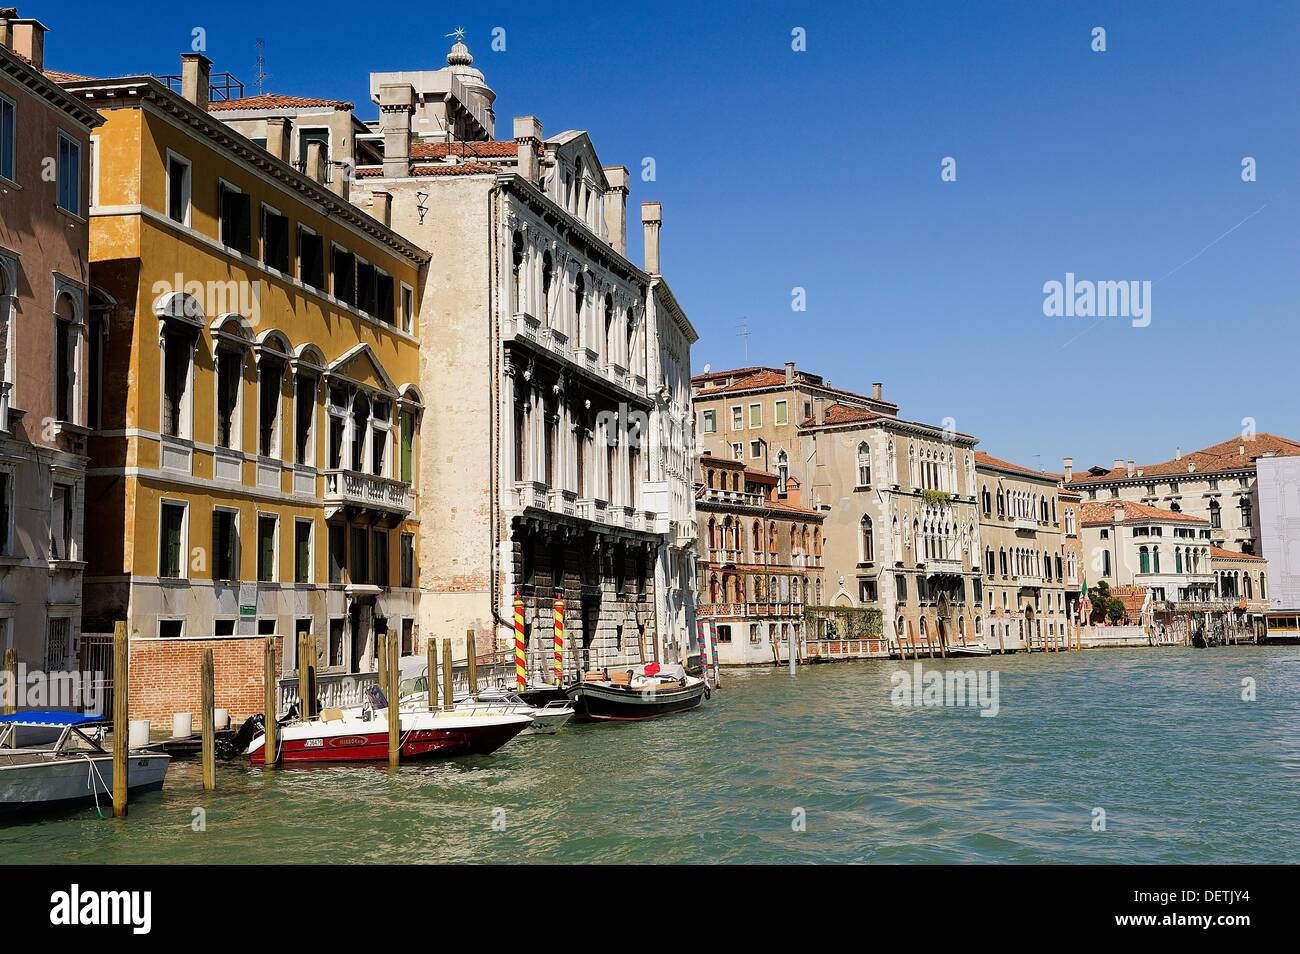 Venice is a city that is sinking 1 centimeter per year - Stock Image